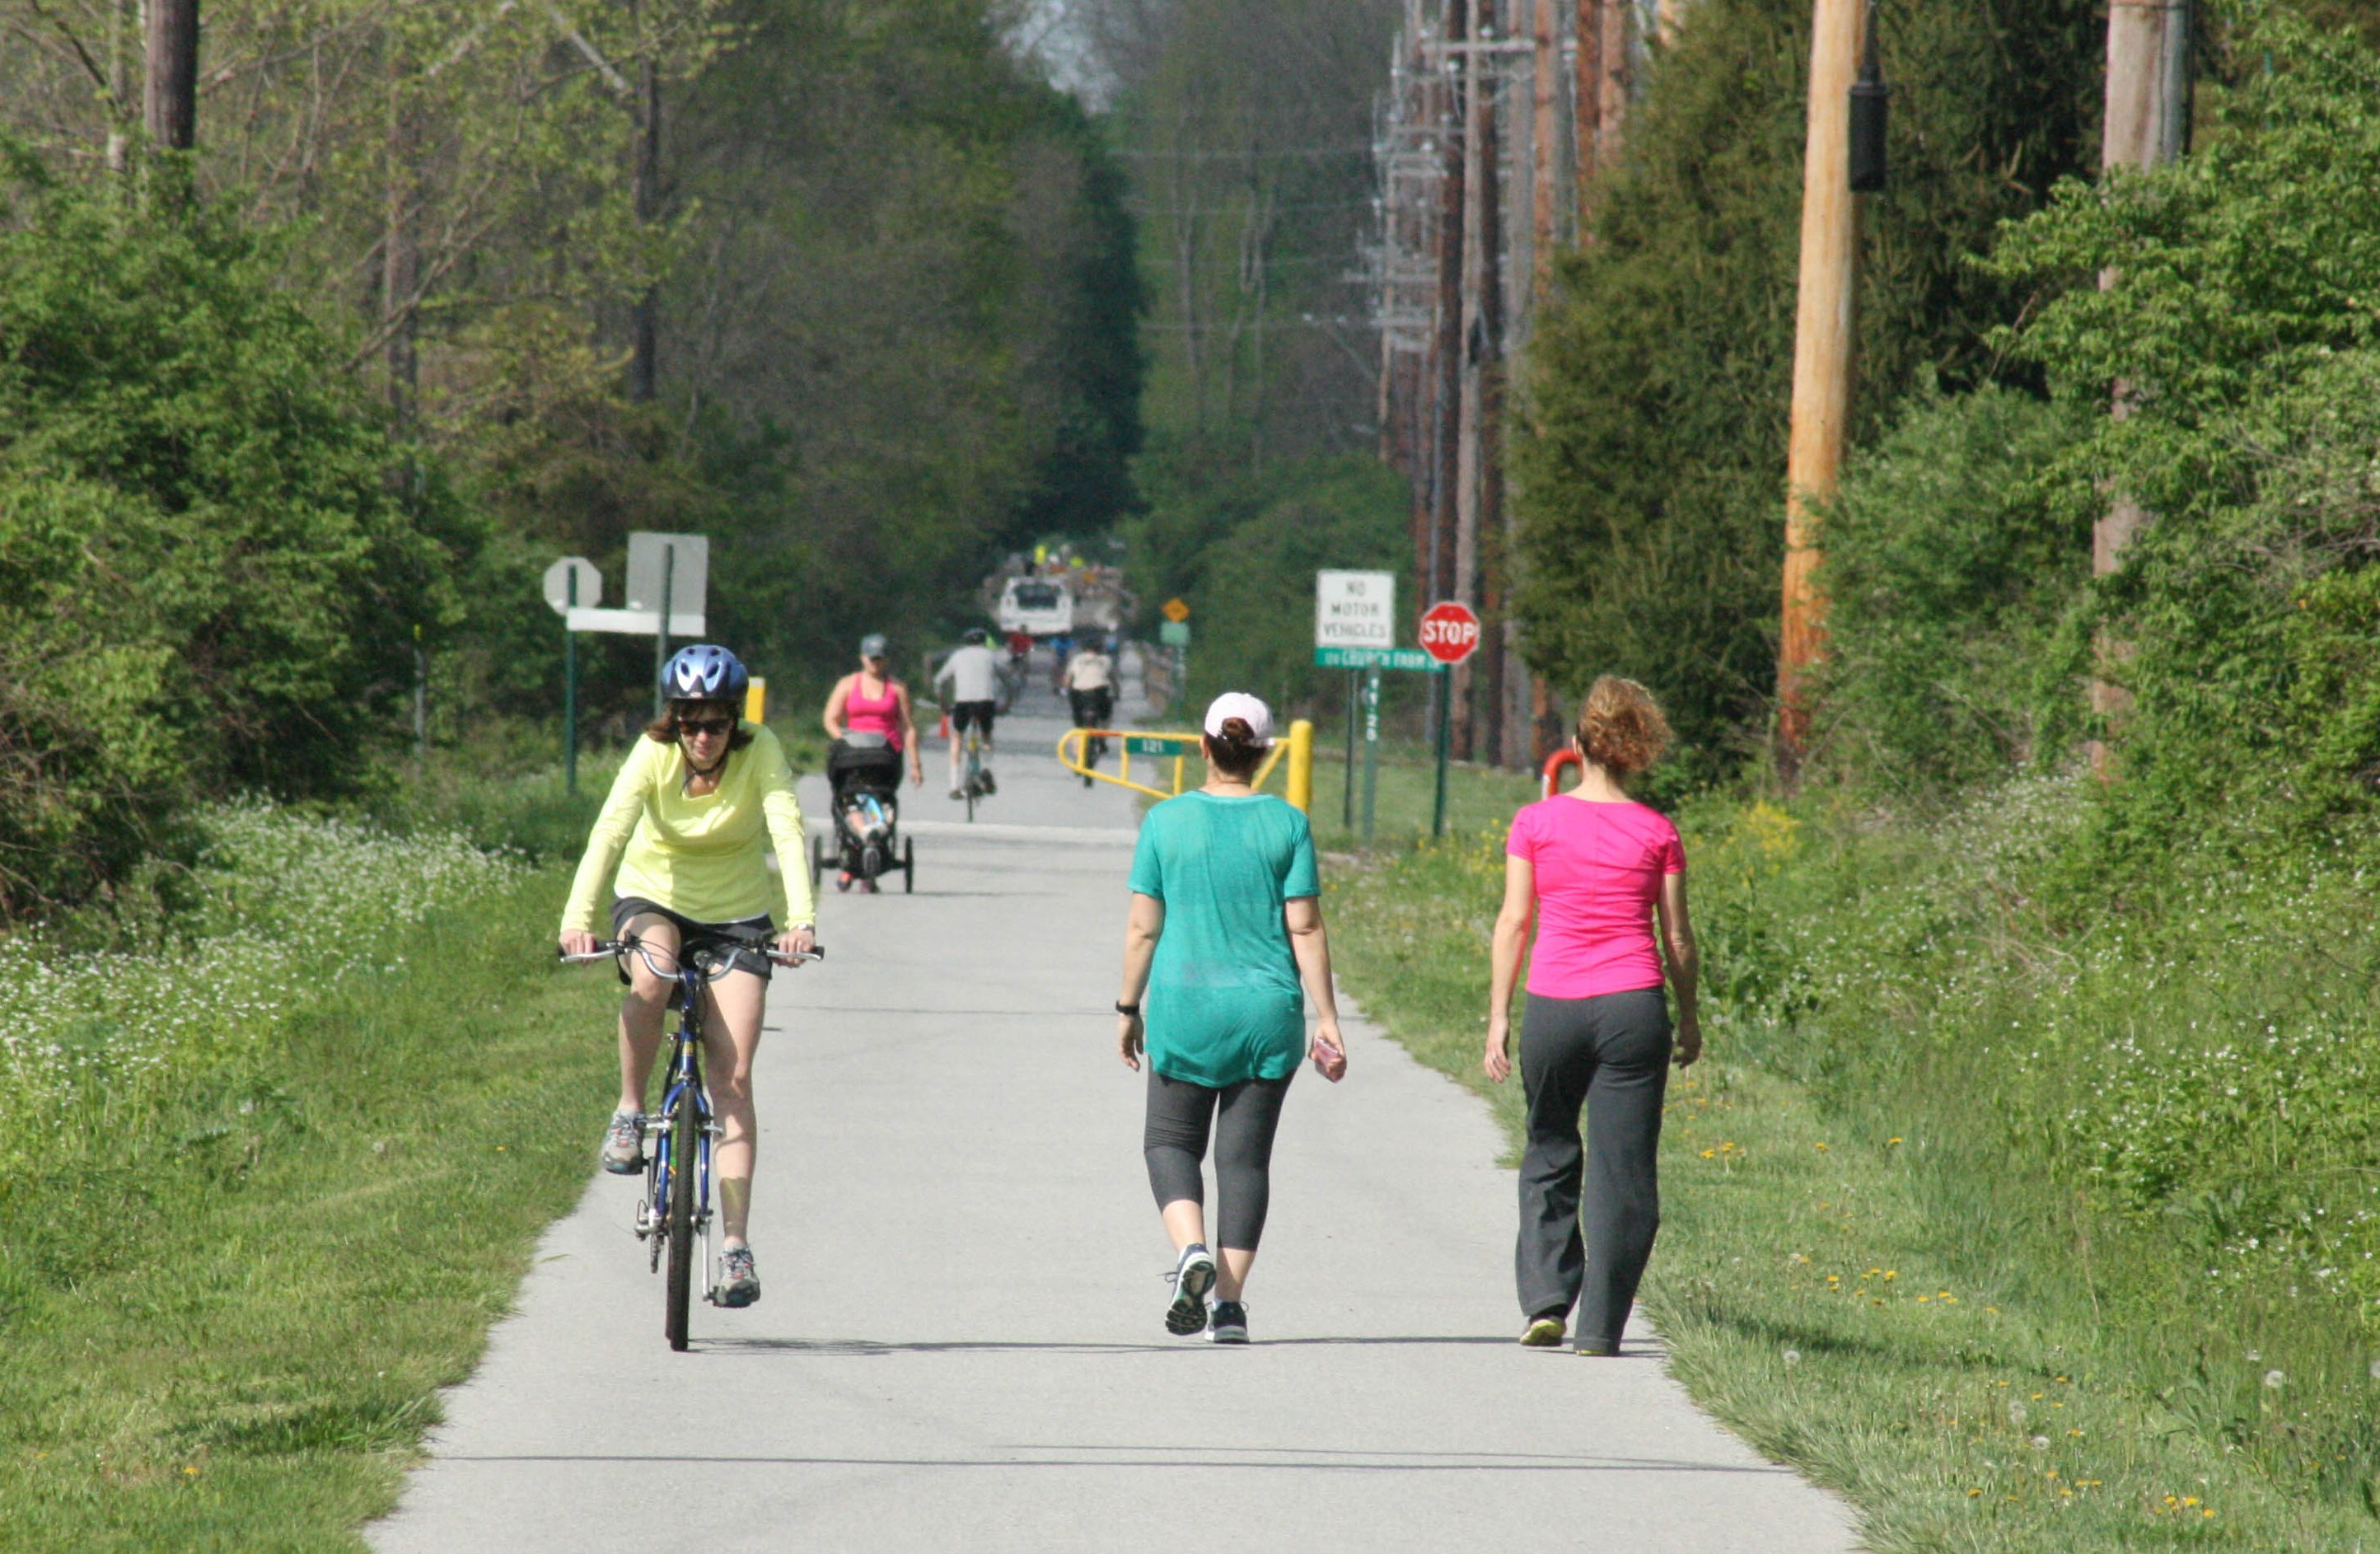 East Whiteland Receives $250,000 Grant to Connect Areas of Community to Chester Valley Trail